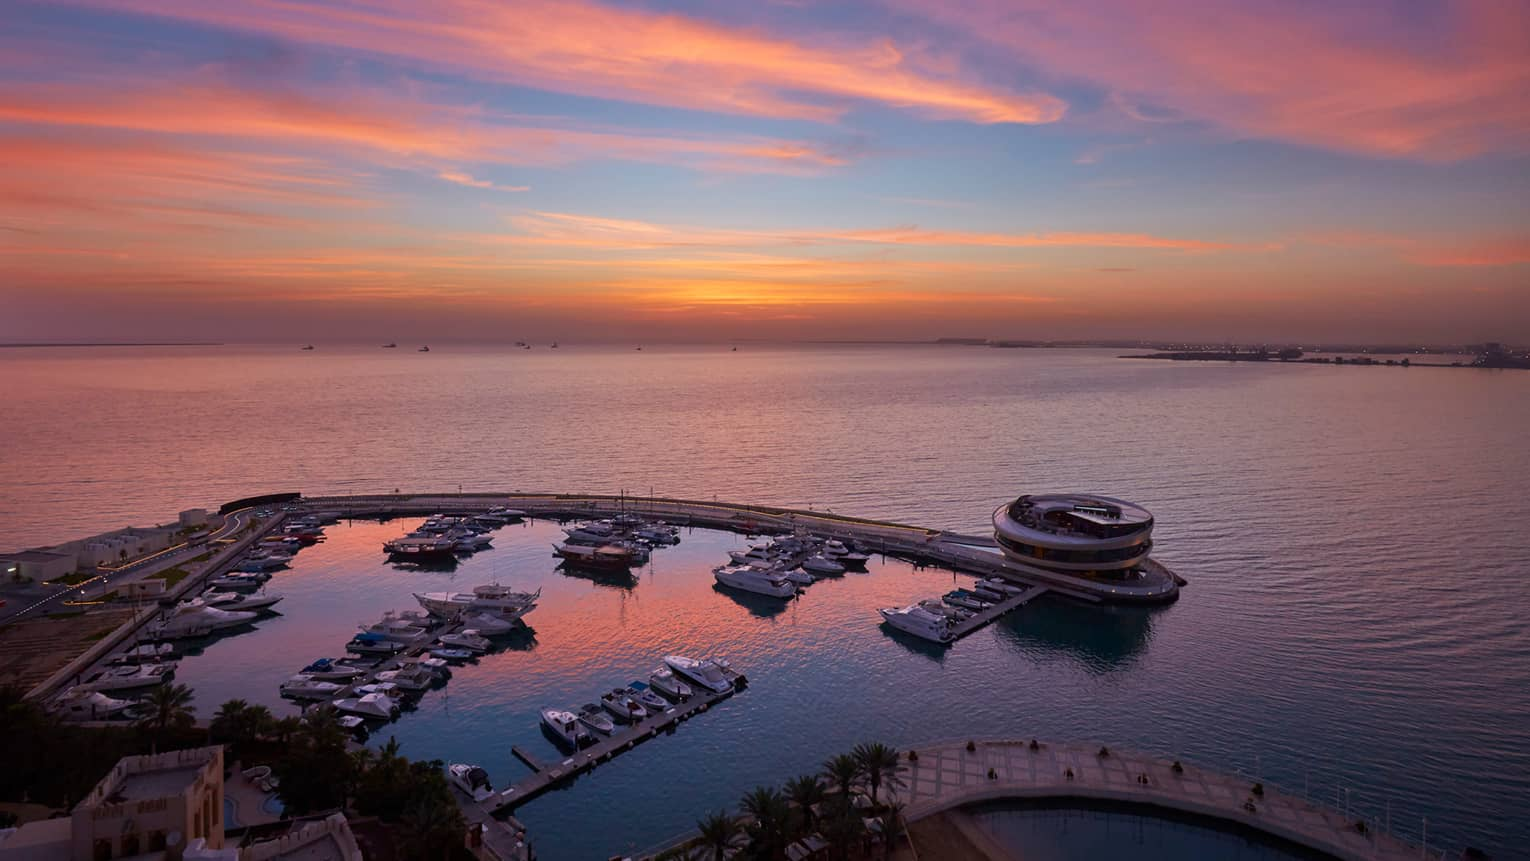 Aerial view of private Four Seasons Marina against the gulf, pink sky at sunset